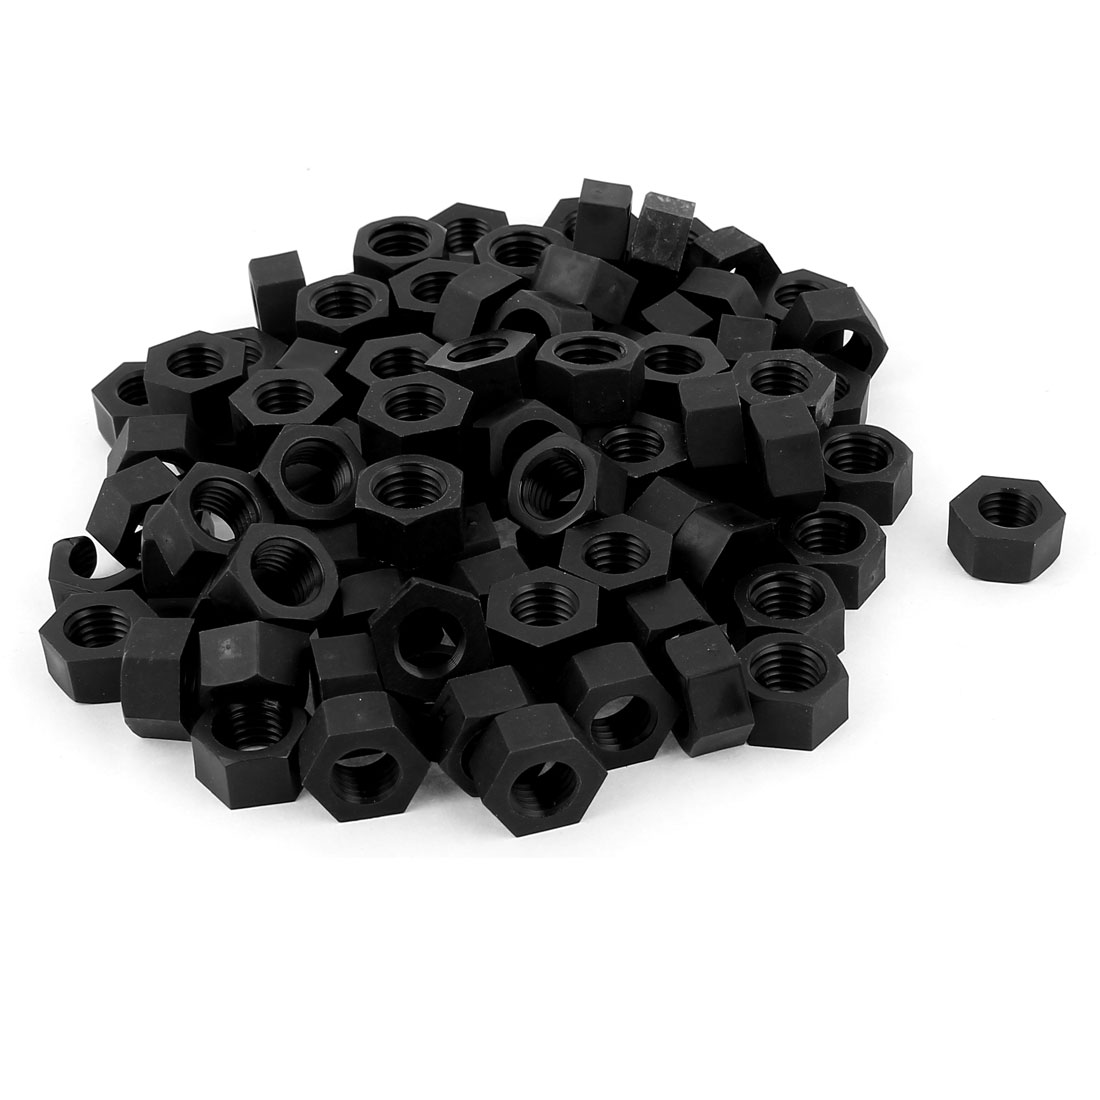 Metric M12 Thread Nylon Insert Lock Screw Fastener Hexagon Hex Nuts Black 100pcs